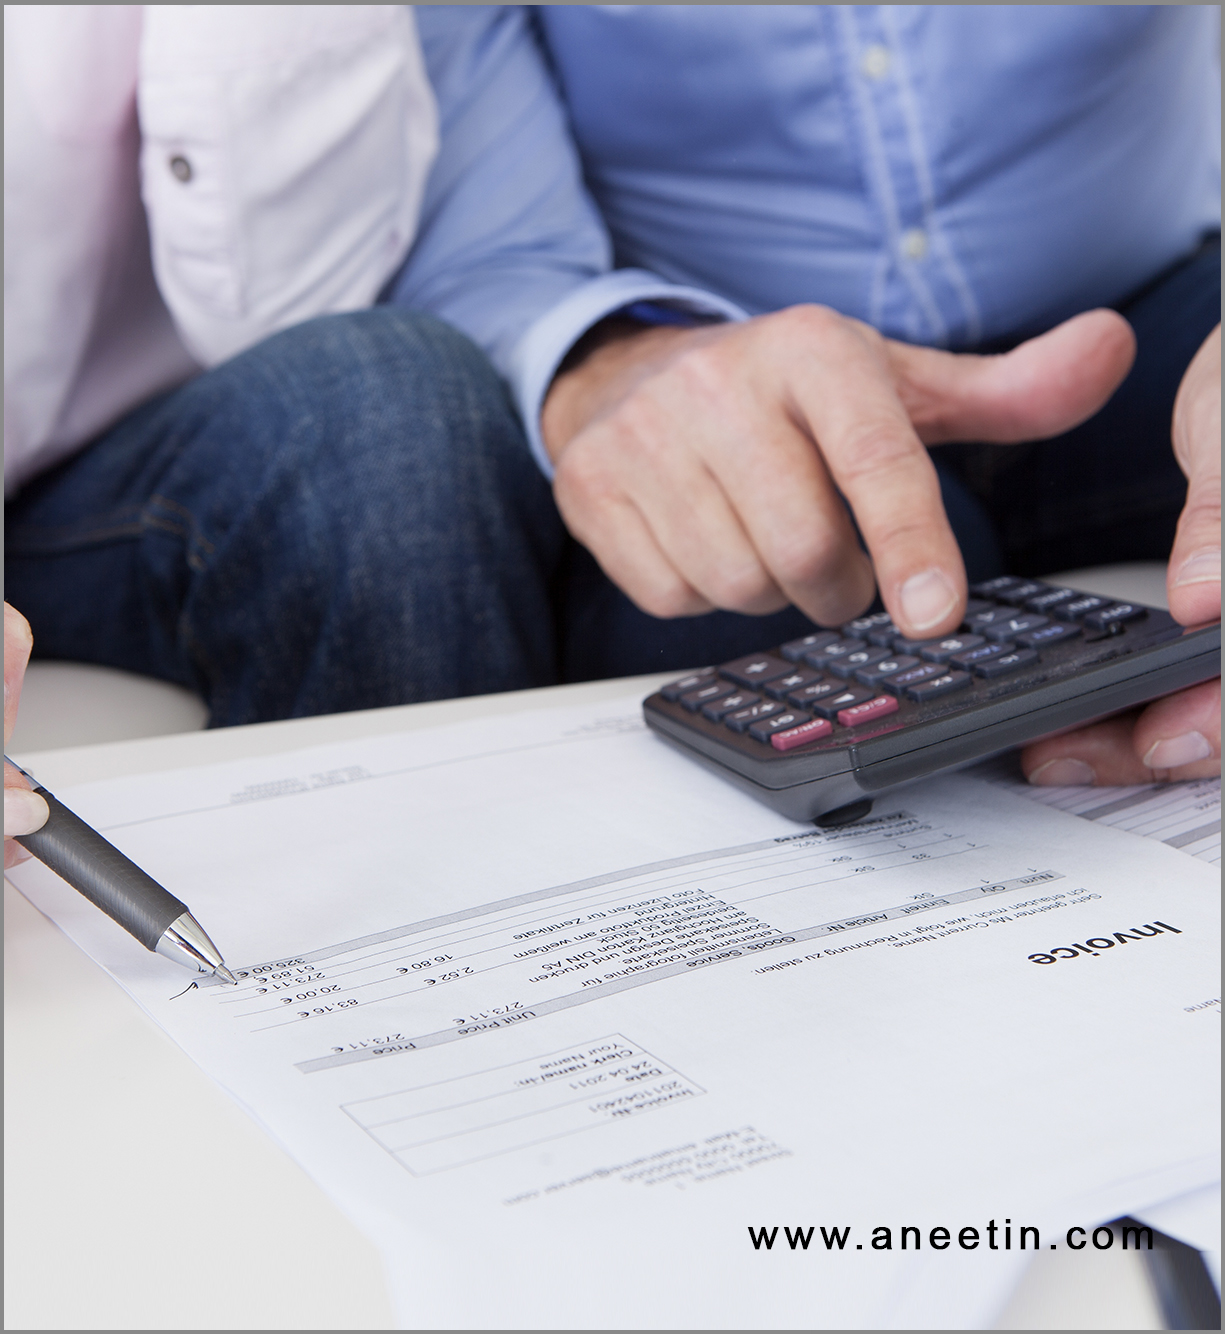 http://www.aneetin.com/how-to-plan-your-budget-carefully/